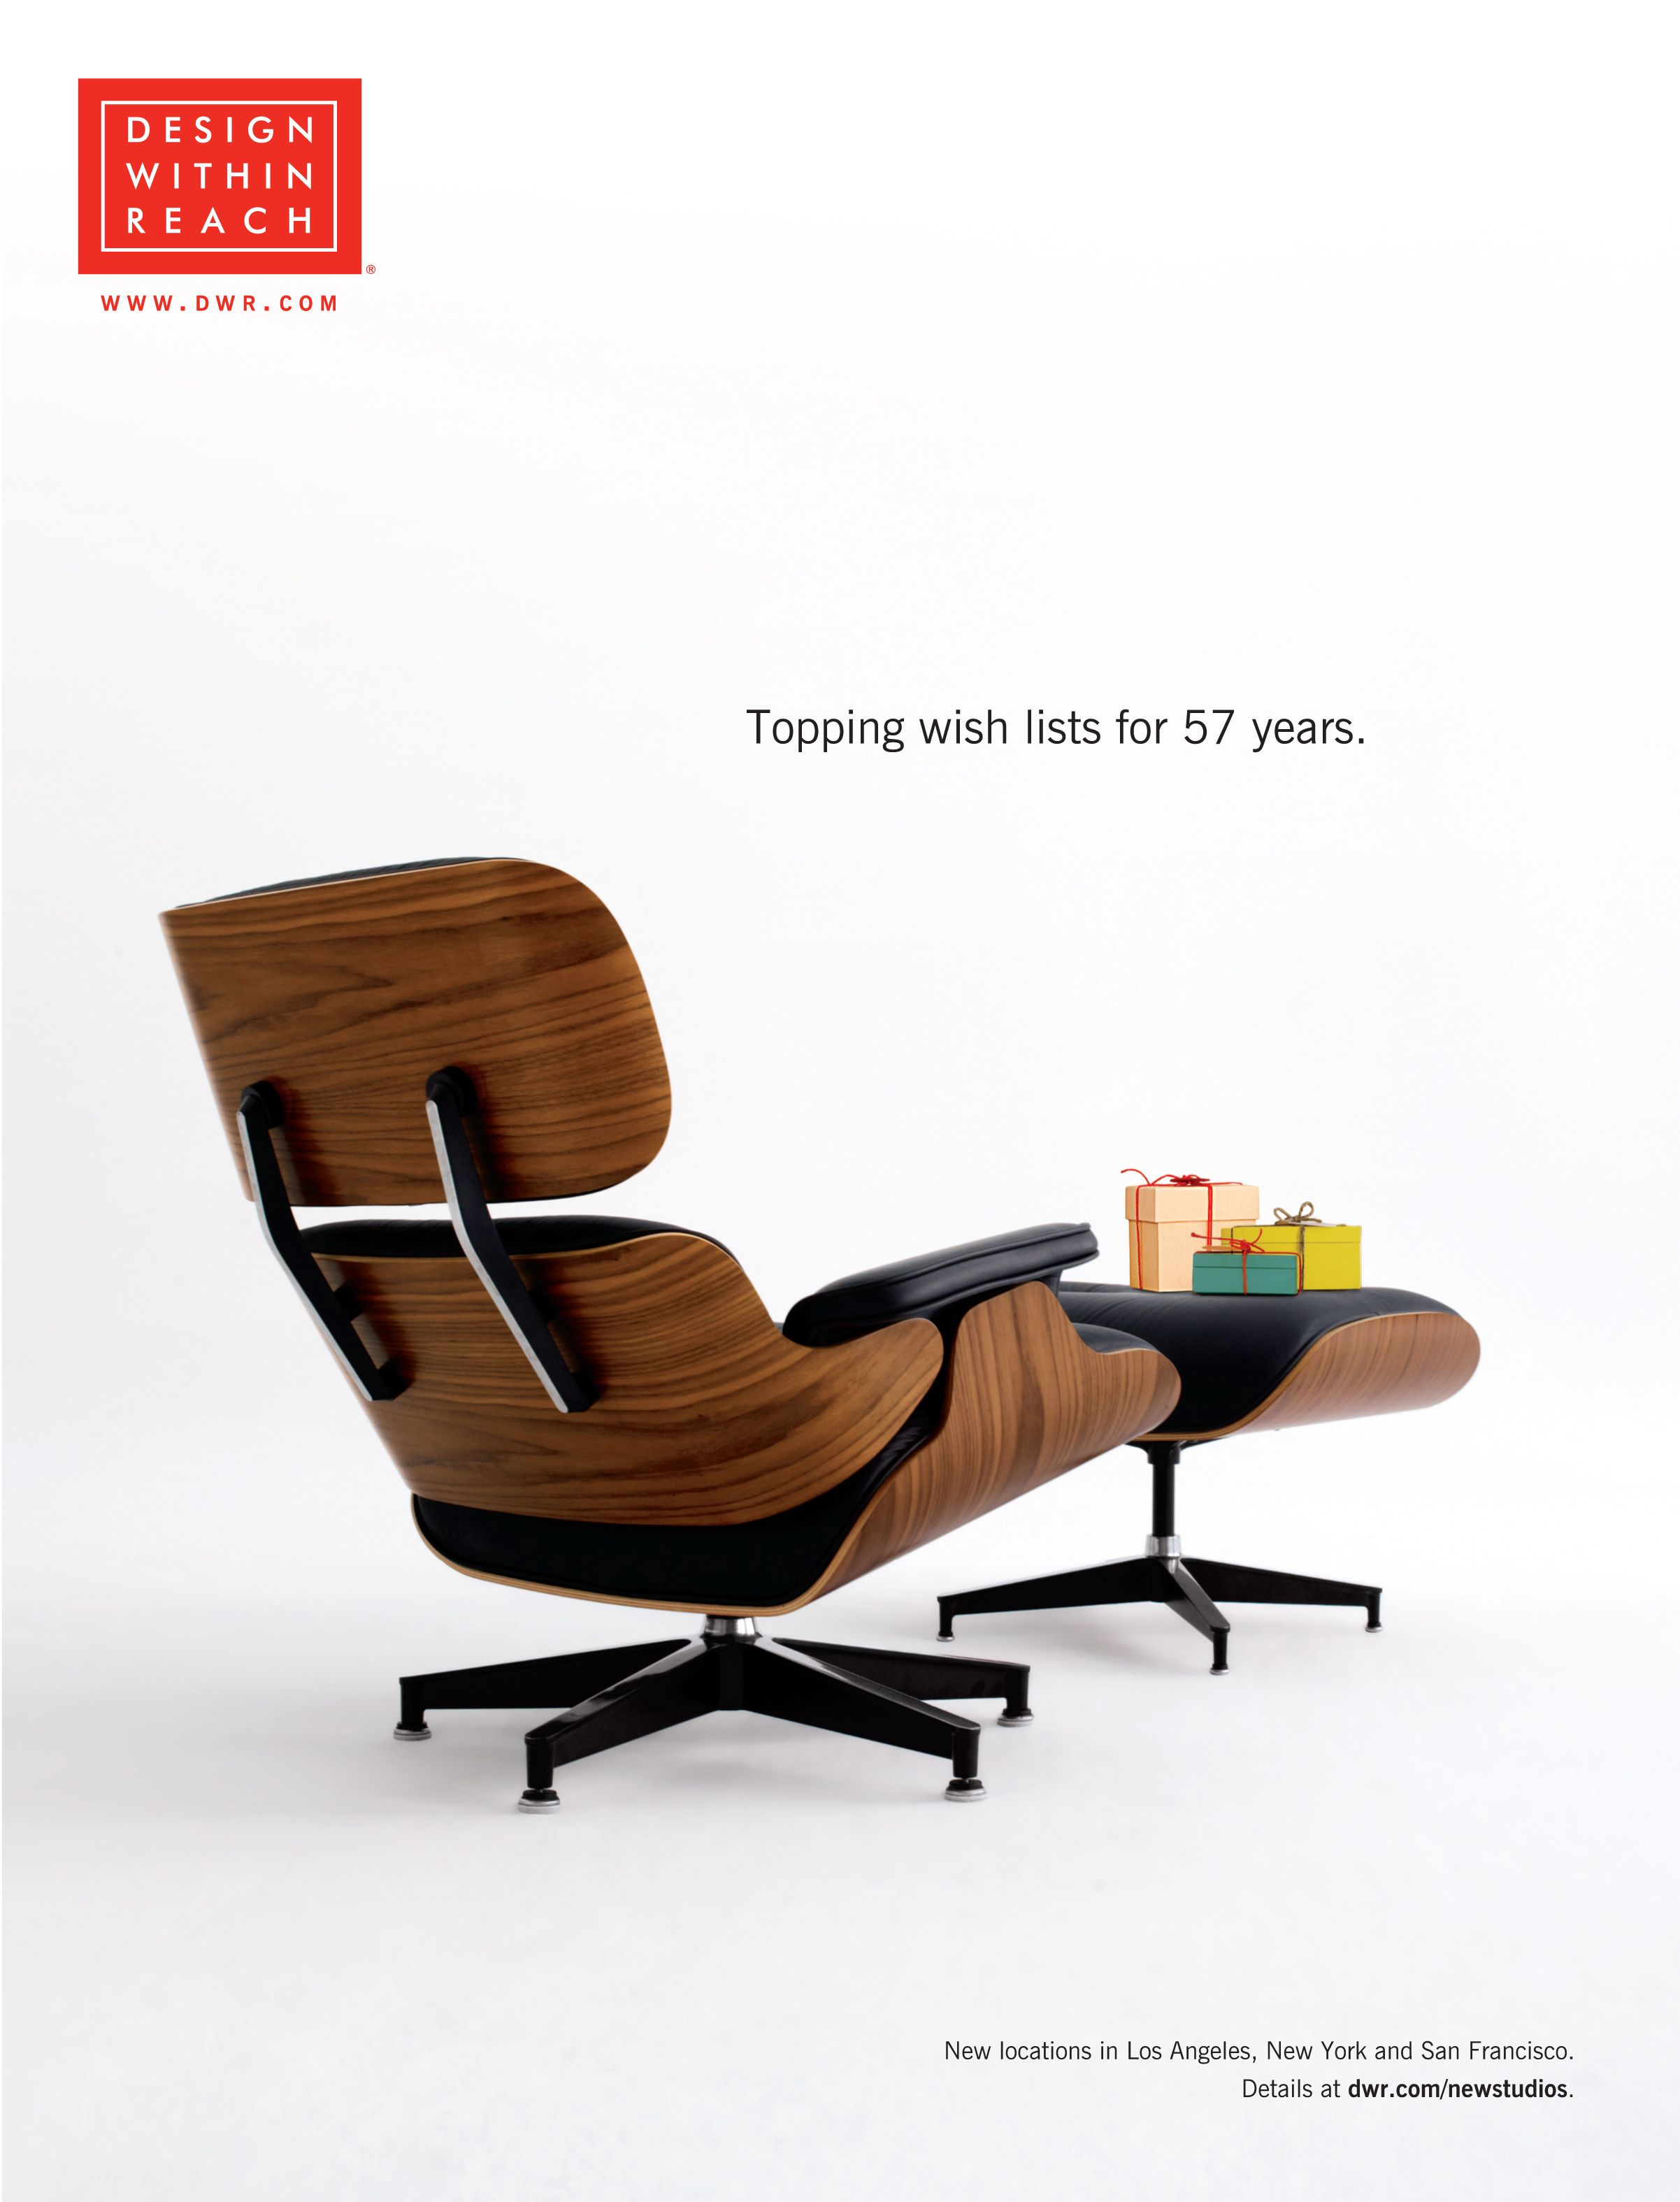 Superieur 2013 December DWR Catalog Cover Featuring The Beautiful Eames Lounge U0026  Ottoman.